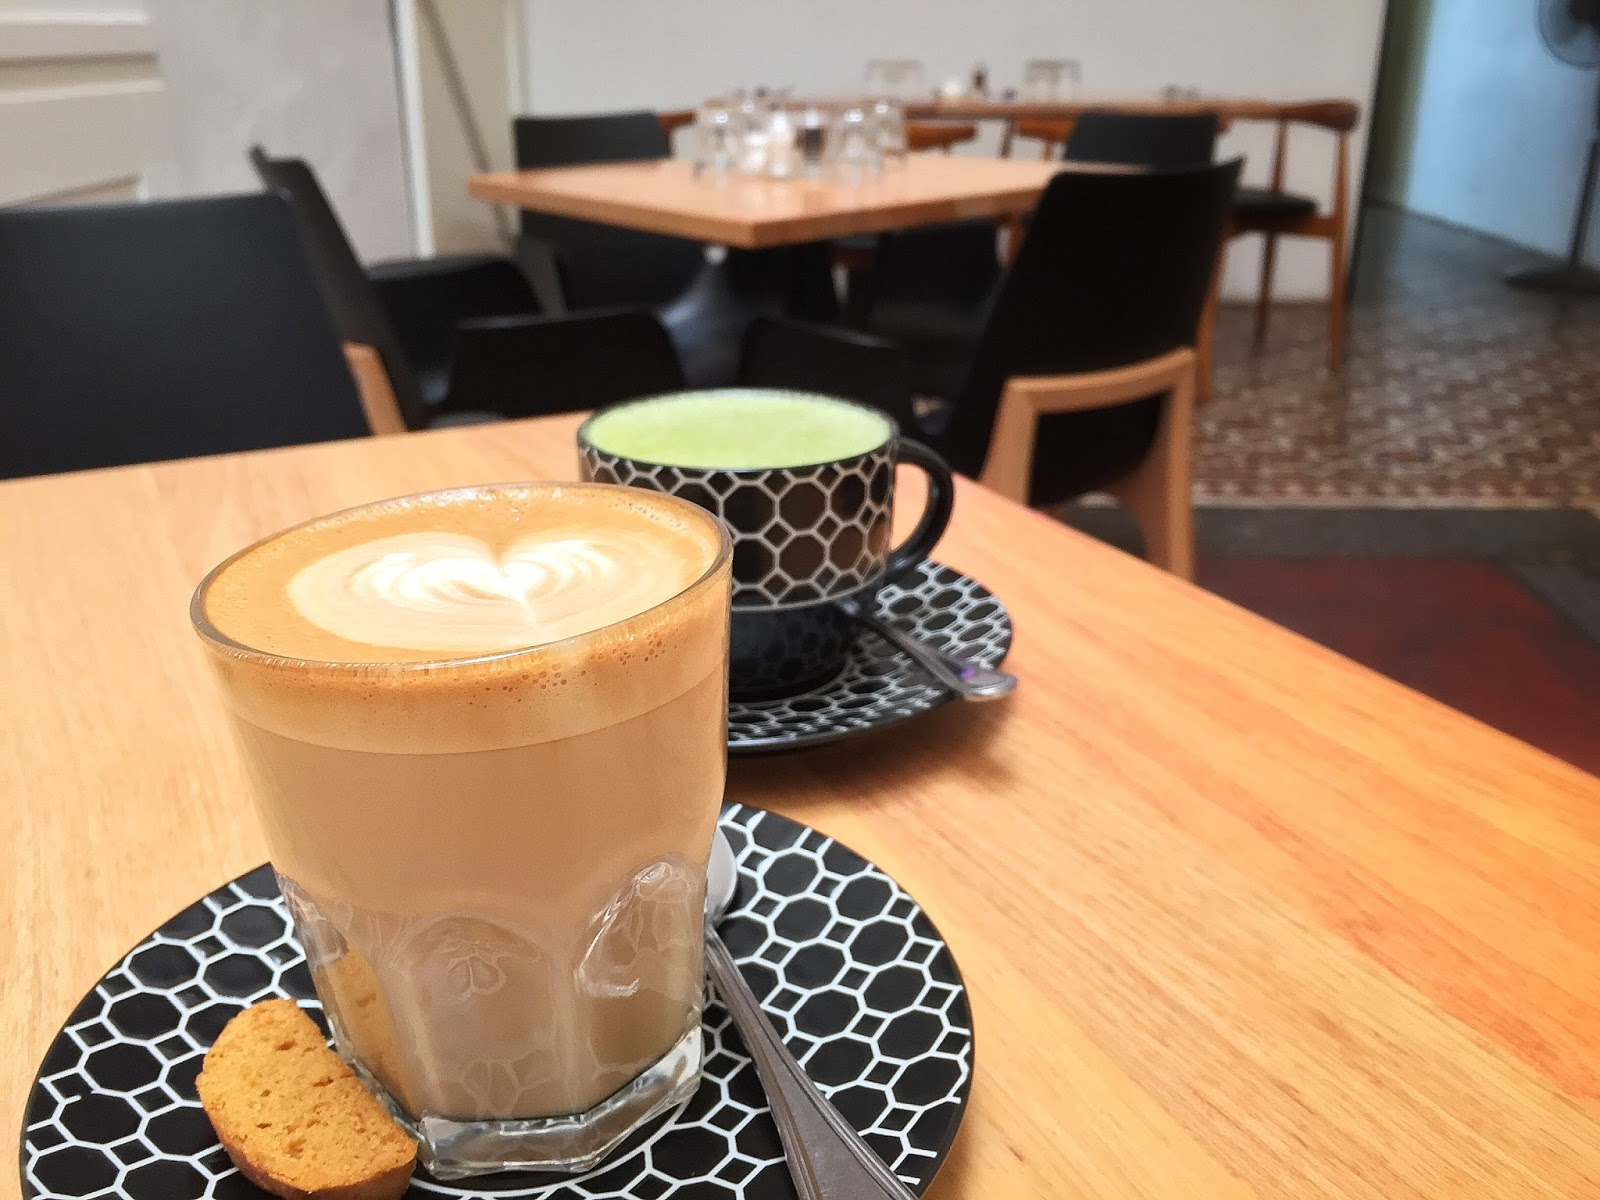 Secawan 'n' Such - Latte and Matcha Latte